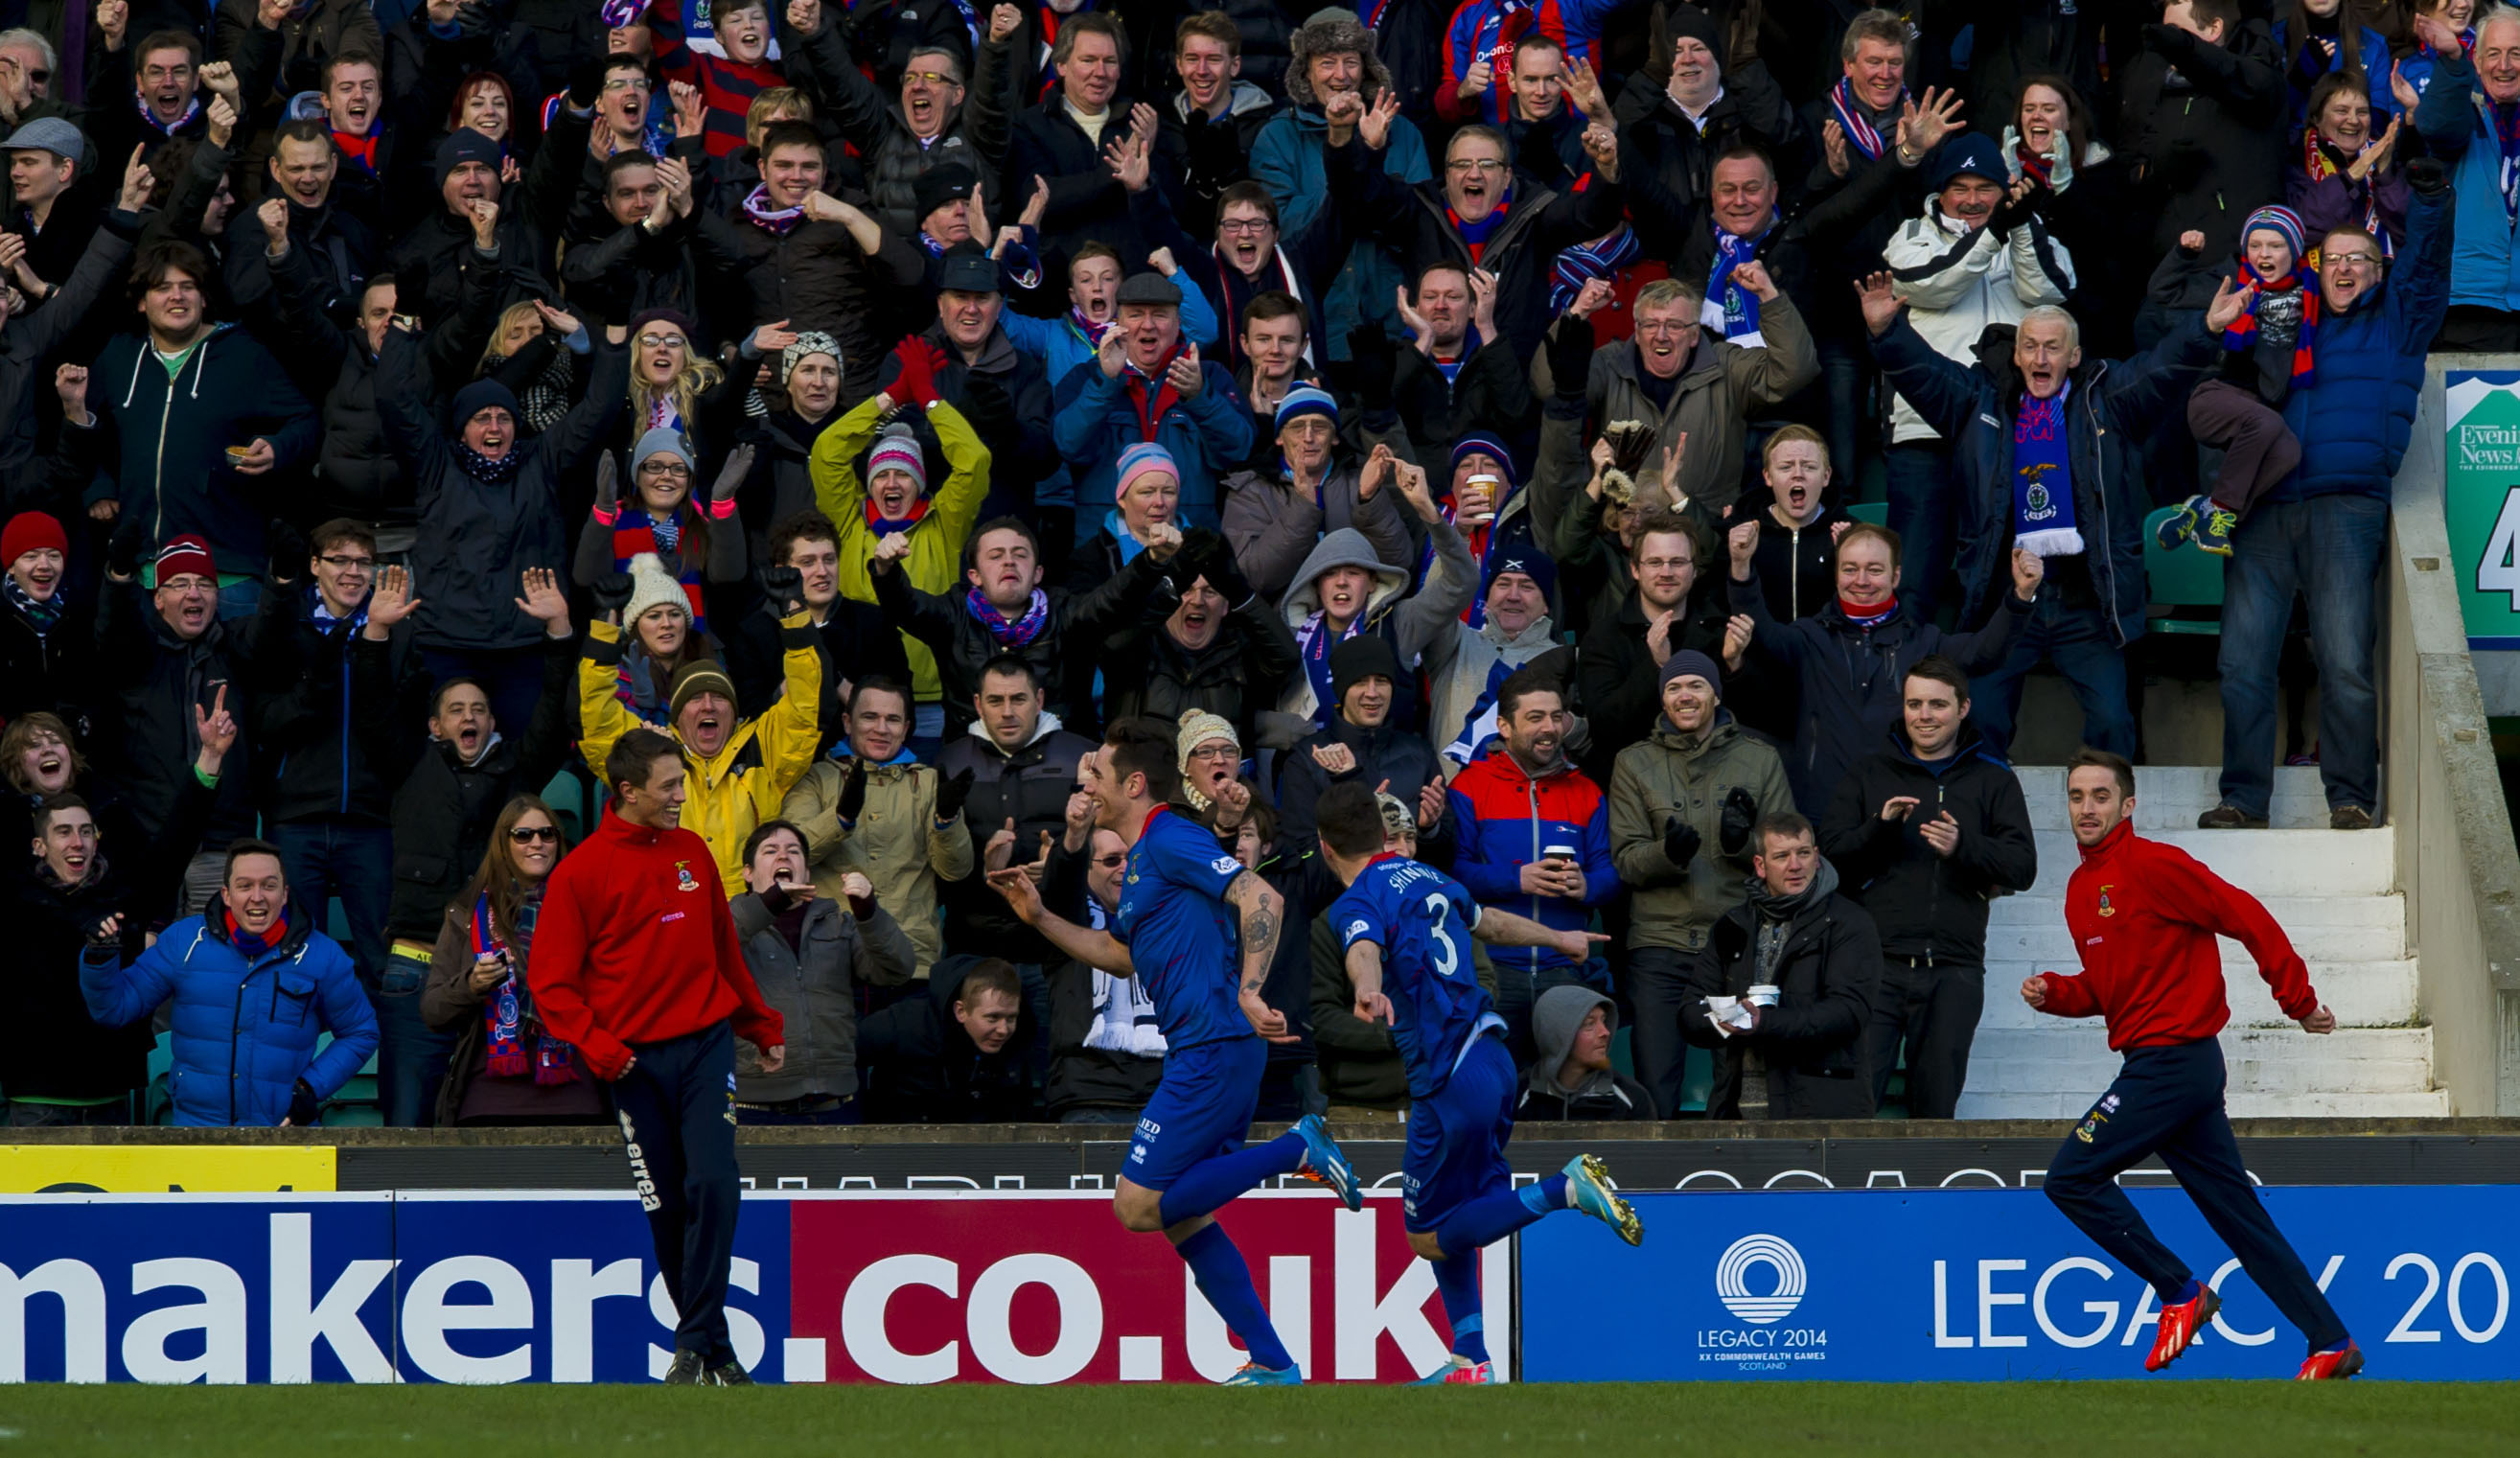 Greg Tansey celebrates in front of the Inverness supporters.